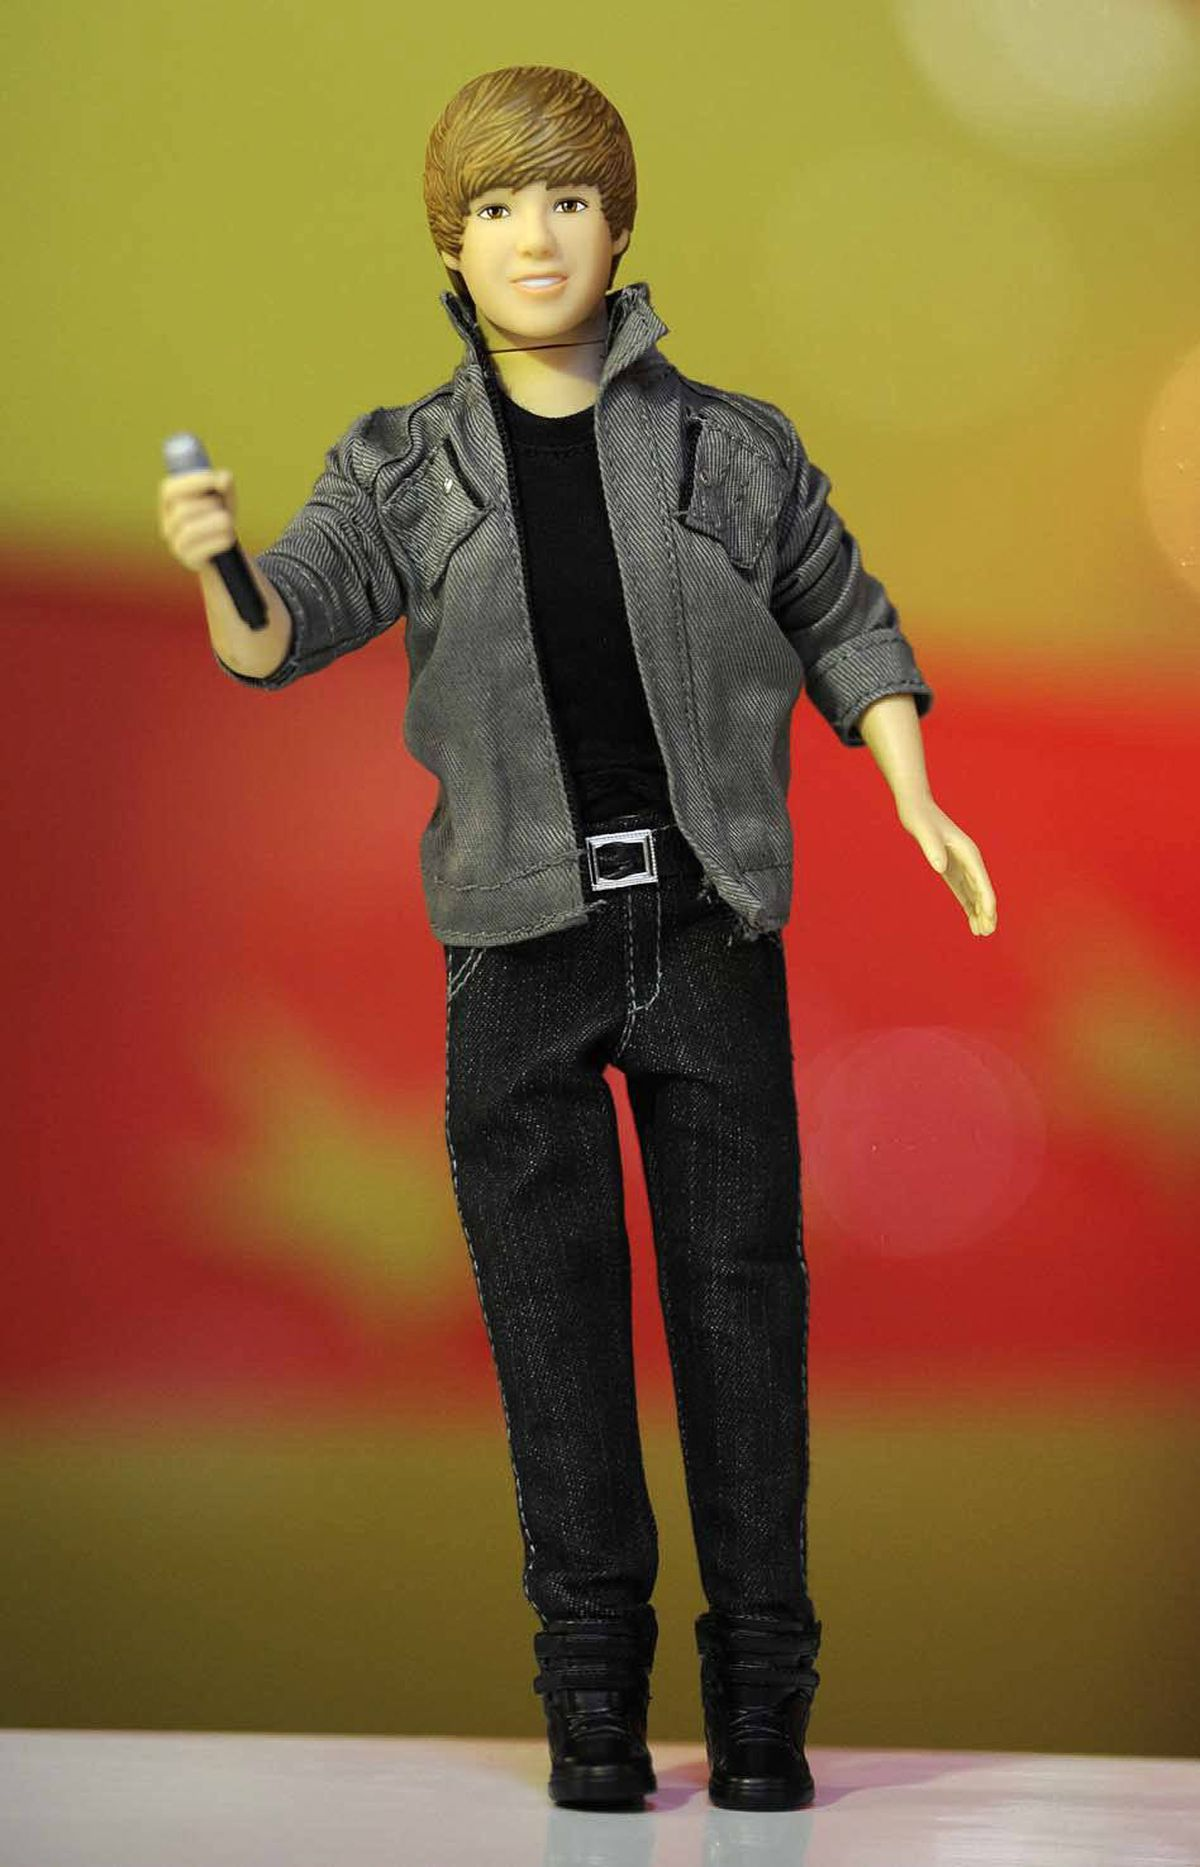 On June 28, Hamleys toy store in London, England, predicted that this Justin Bieber singing doll would be one of the hottest-selling toys this Christmas. There has been no evidence of this being true.